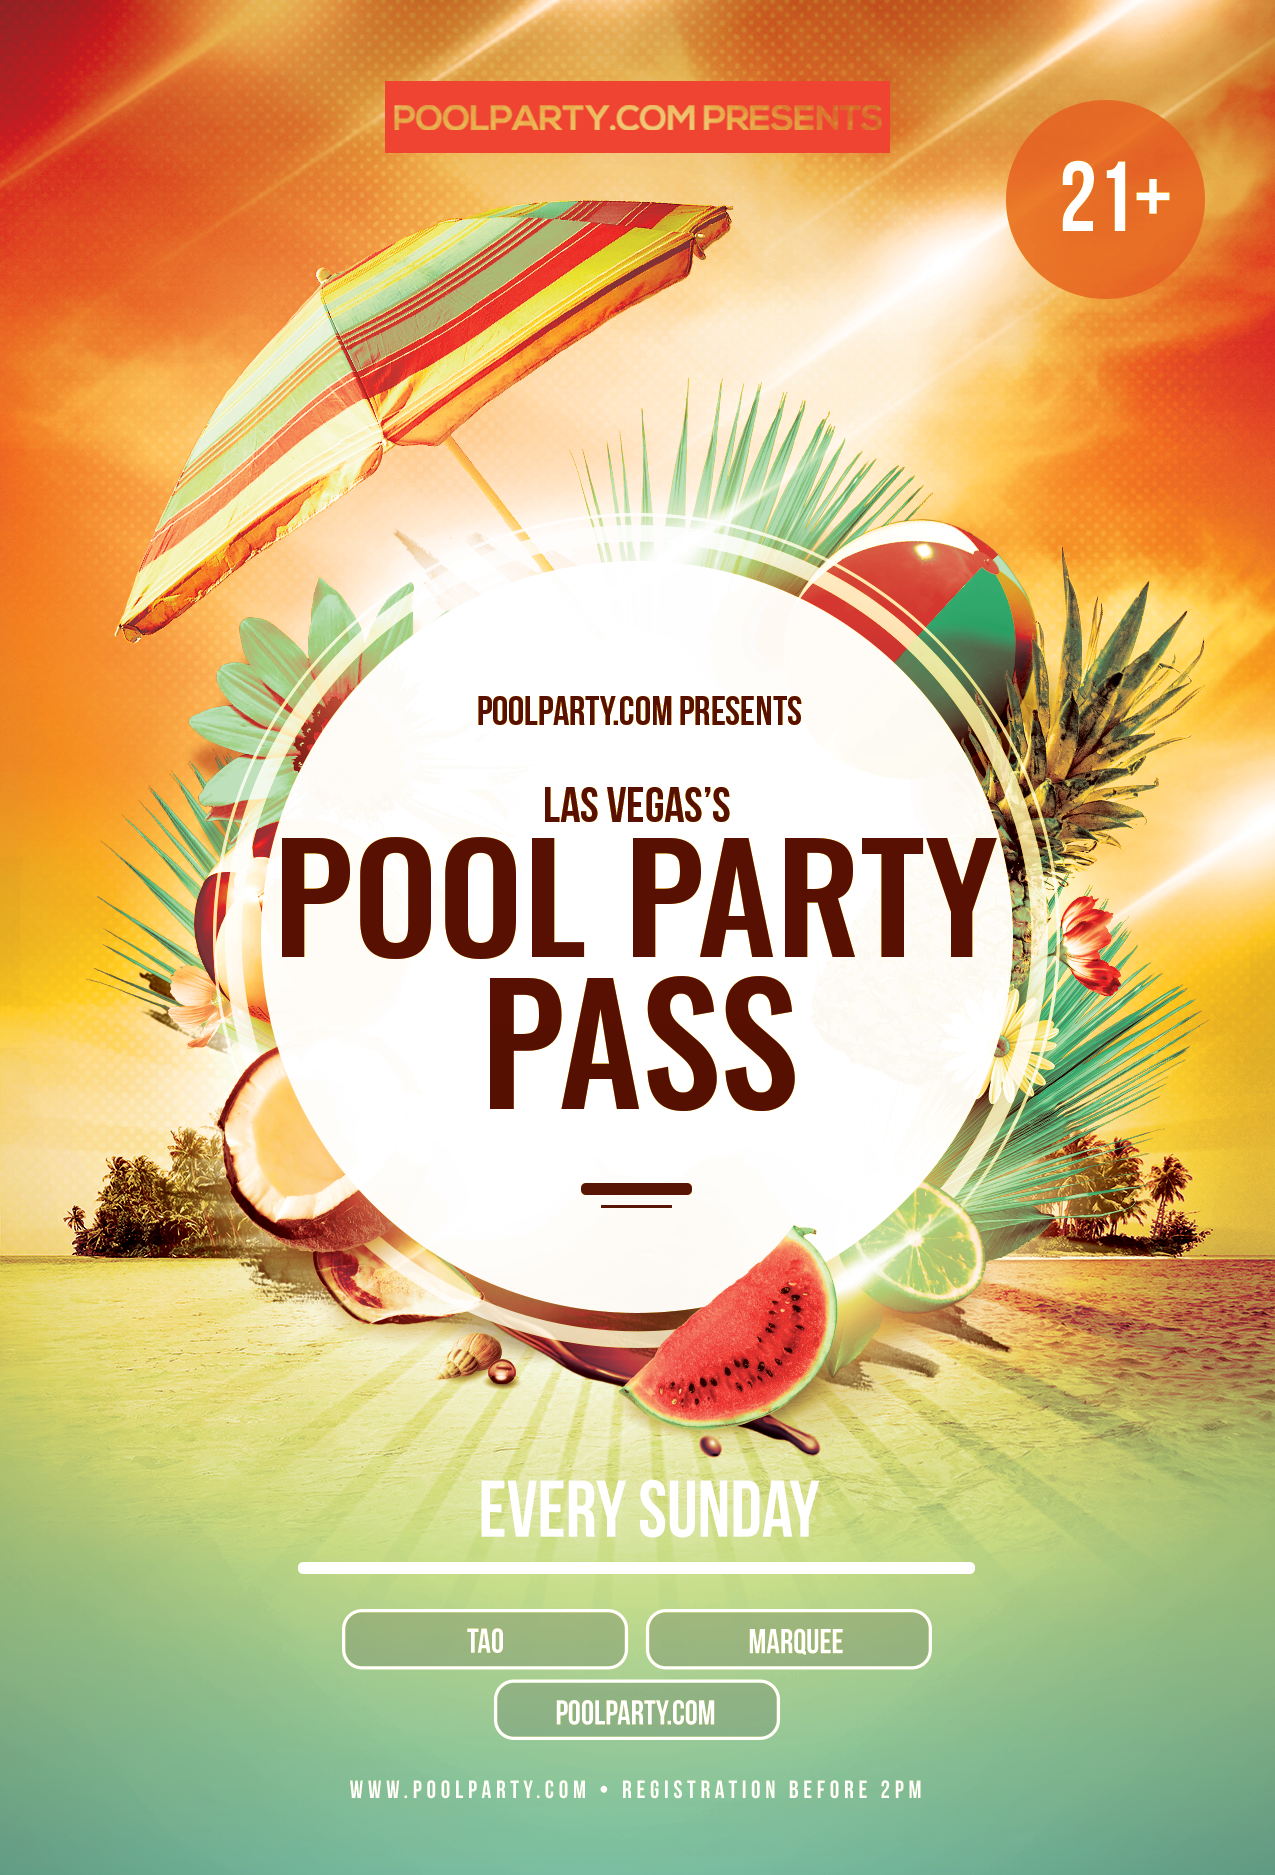 Sunday's Pool Party Pass (August 11th)*NOW INCLUDING FREE ADMISSION TO TAO NIGHTCLUB*